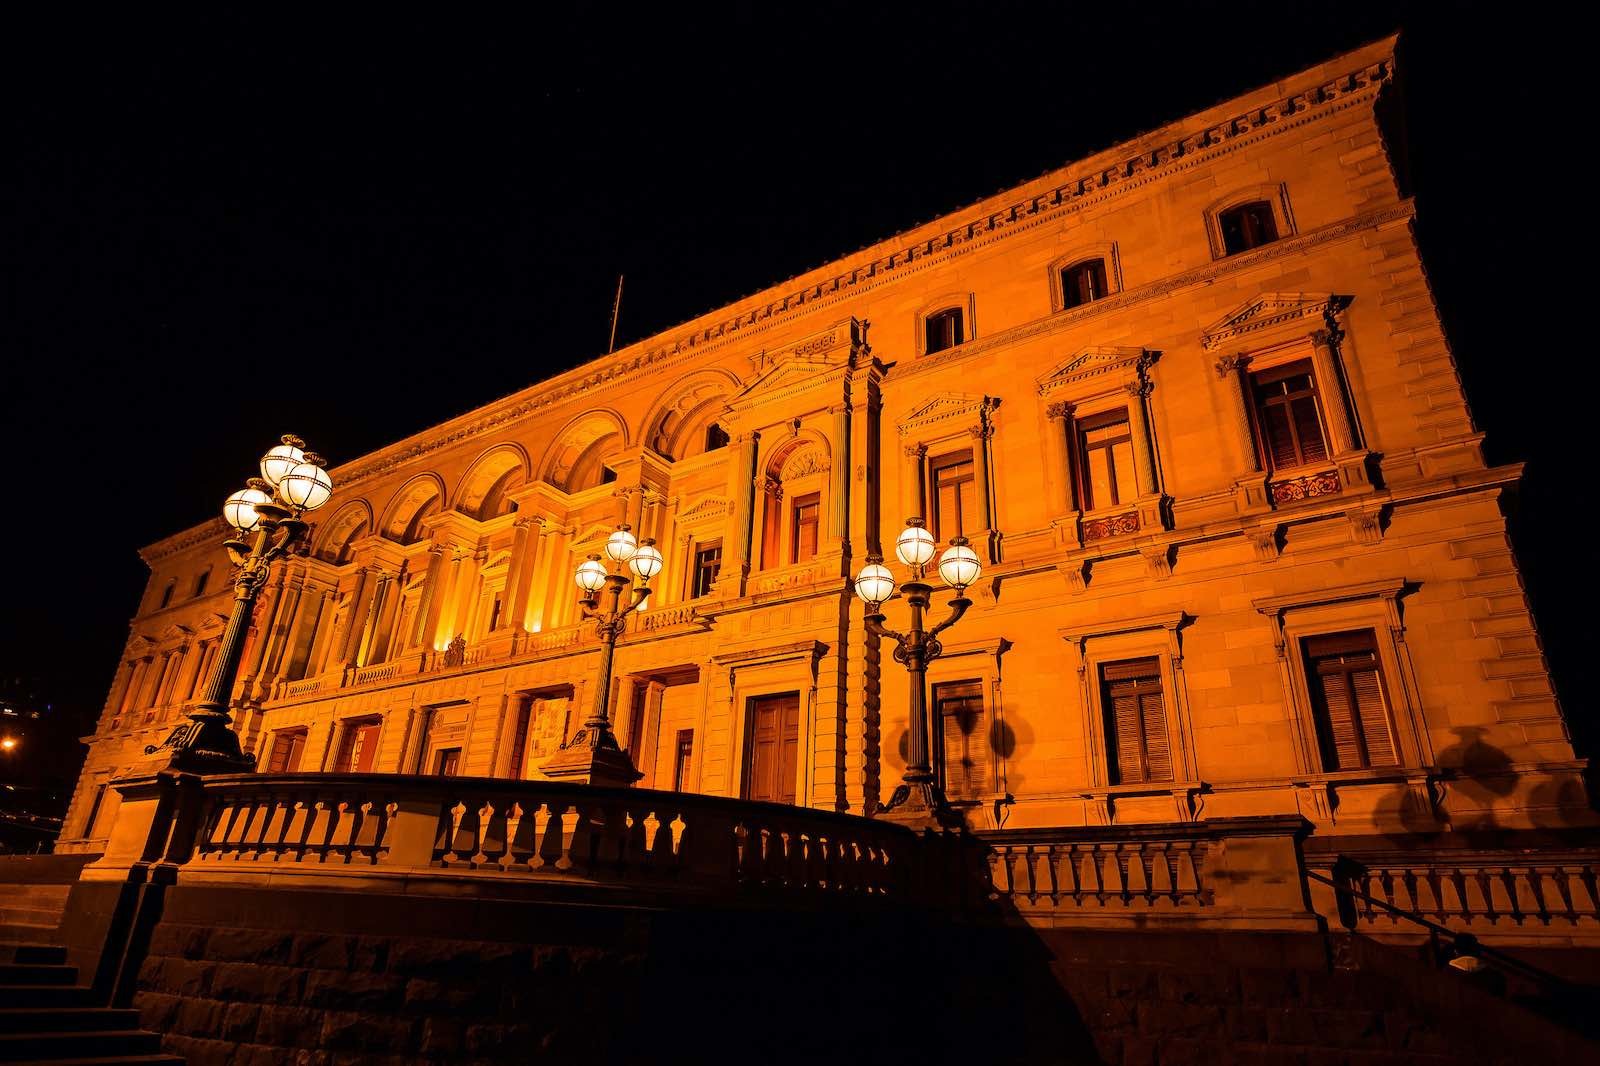 Treasury Building in Melbourne lit orange in commemoration of the 16 Days of Activism and the International Day to End Violence against Women in 2016 (UN Women/Flickr)